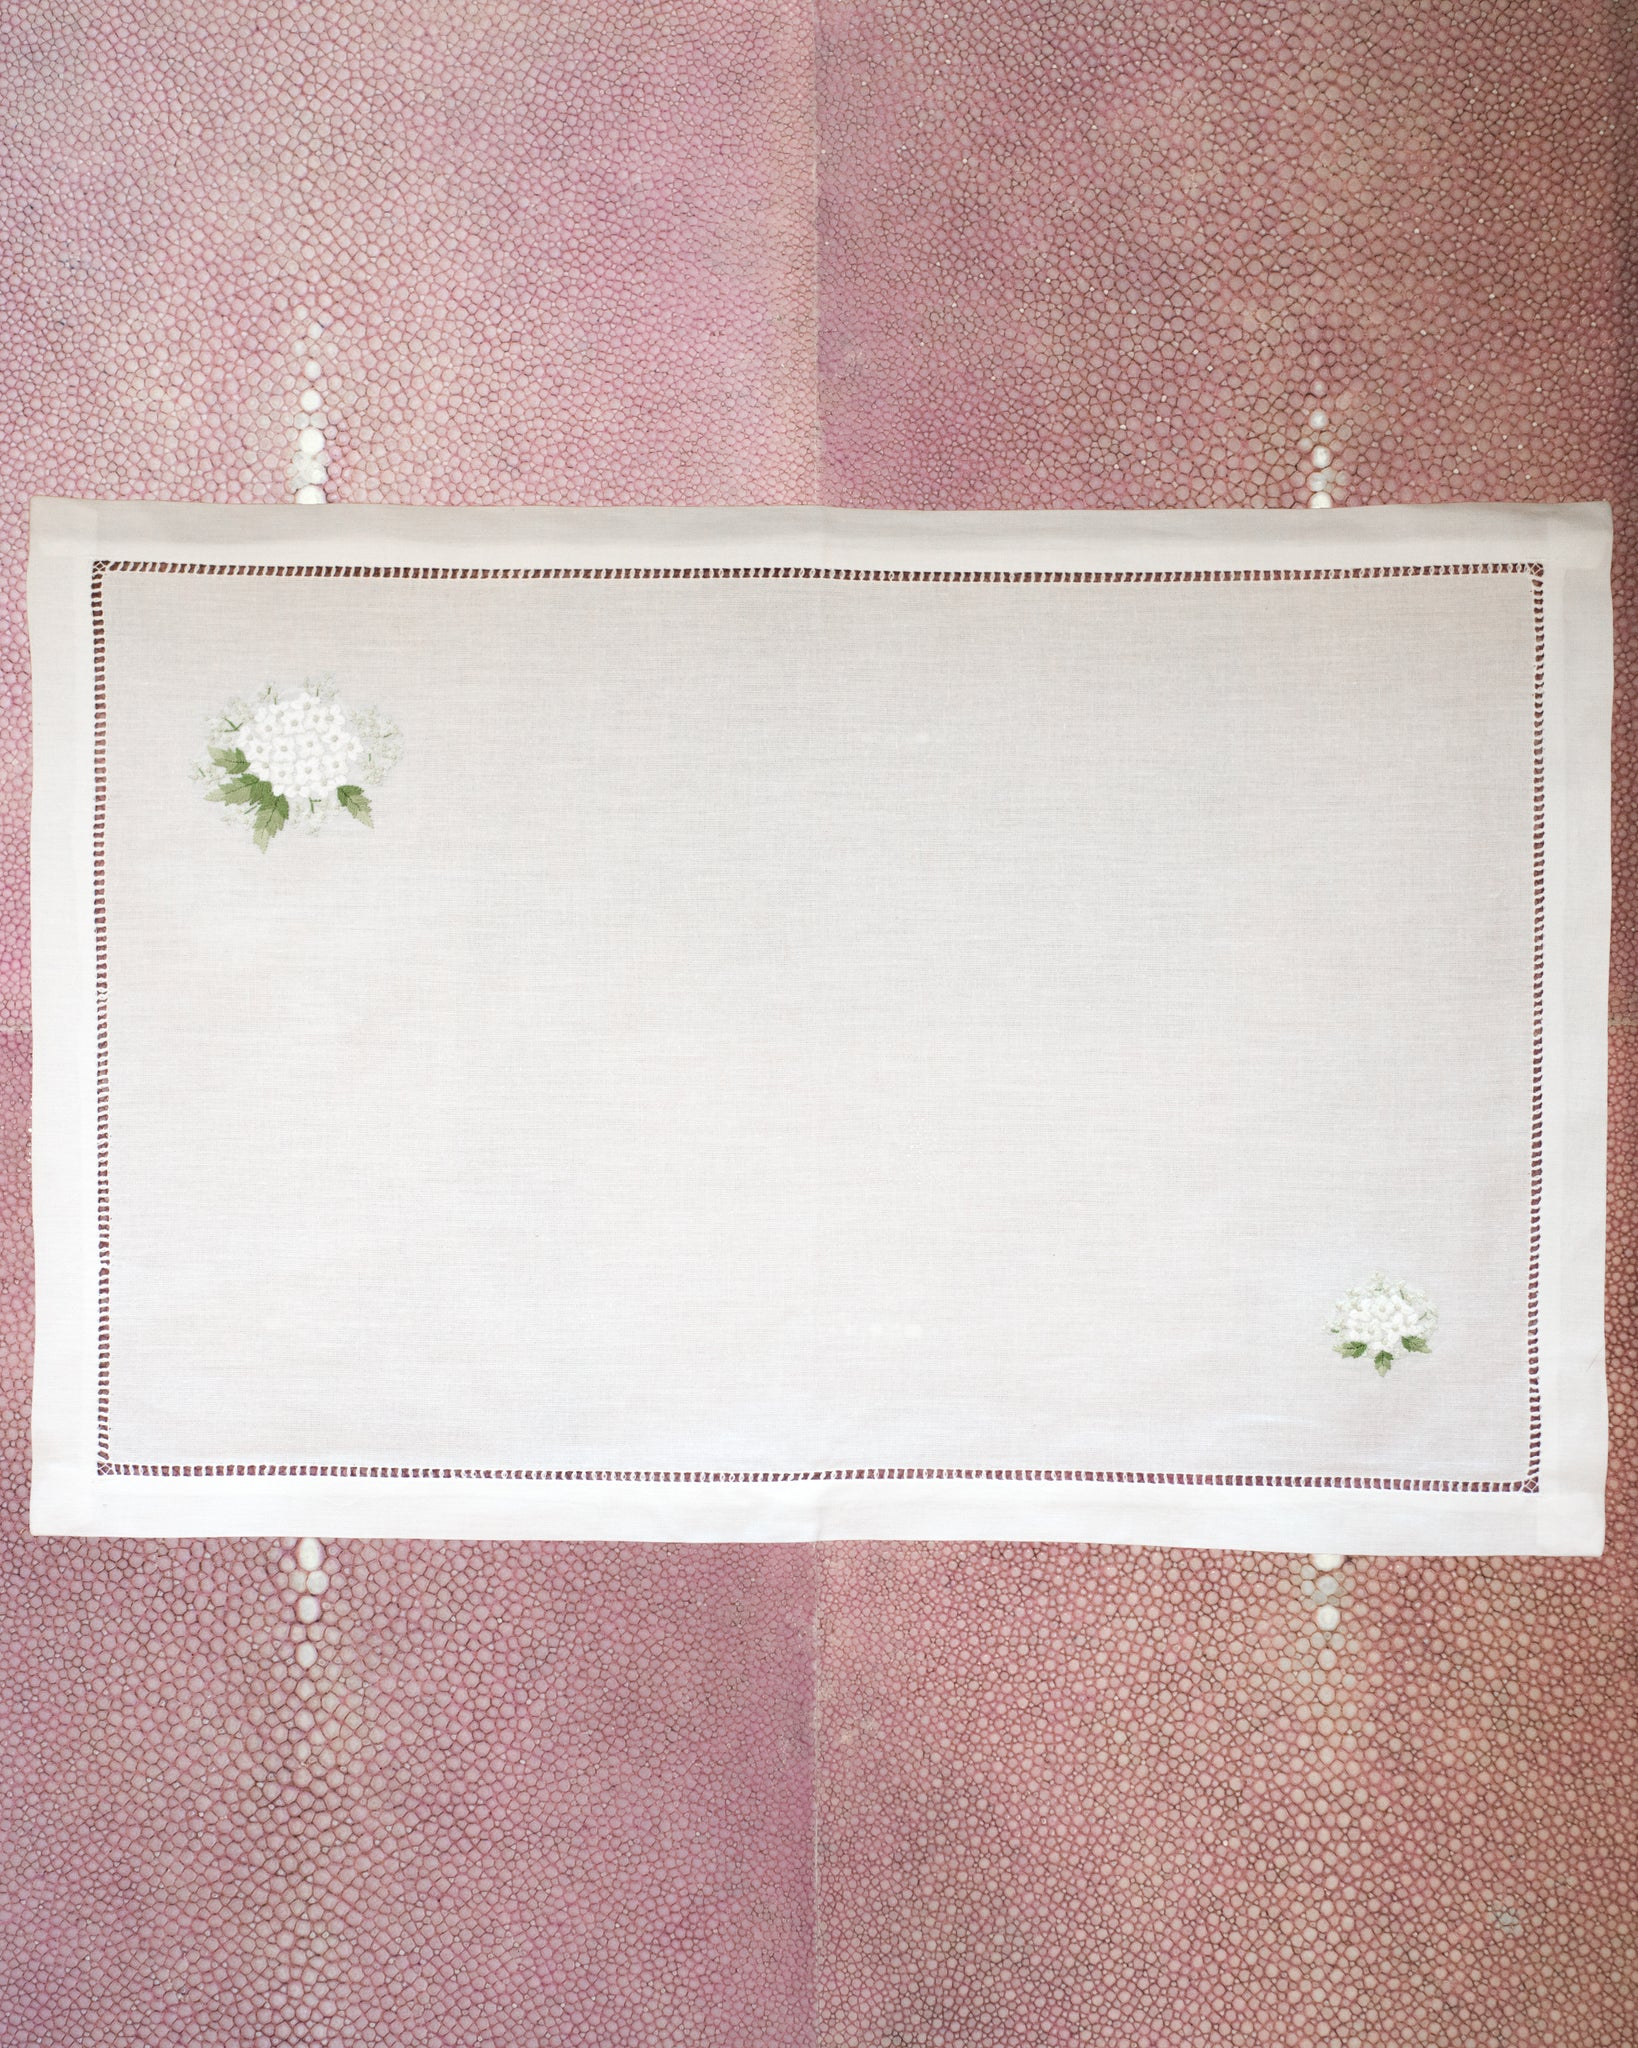 SET OF 12 LINEN PLACEMATS WITH EMBROIDERED WHITE MIMOSAS